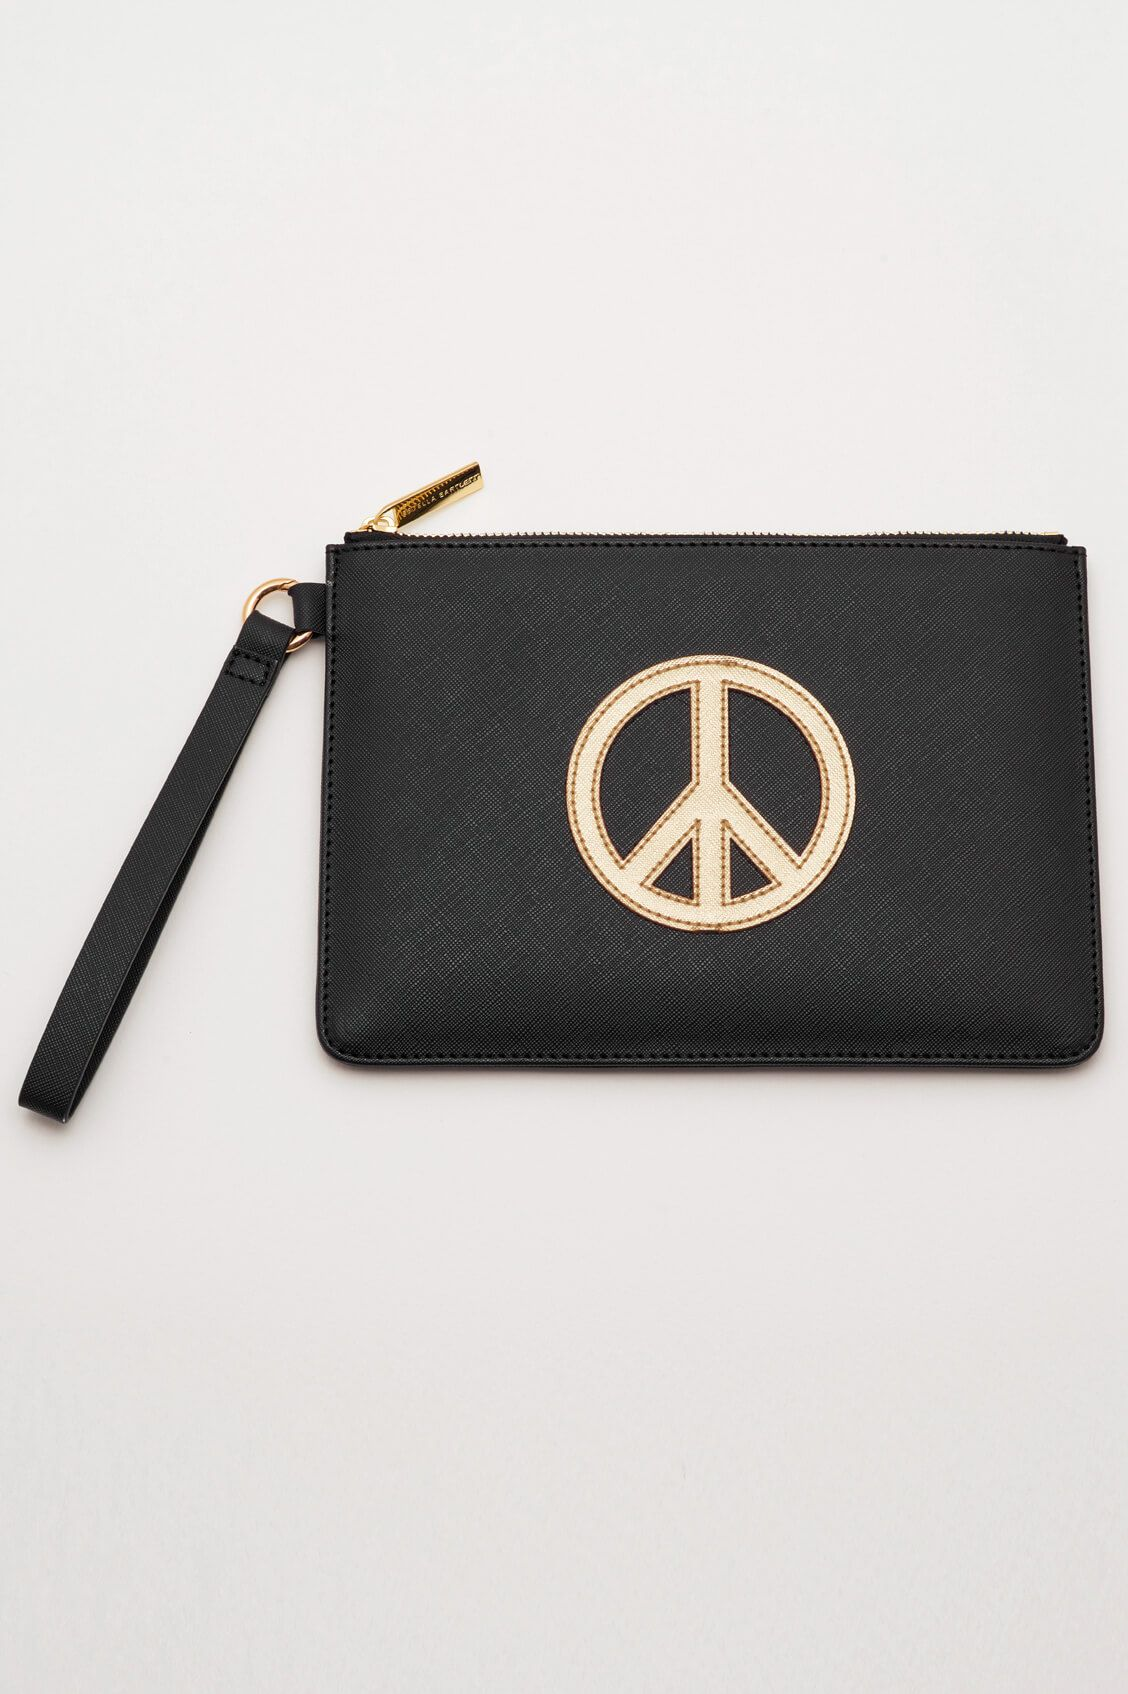 Pochette medium avec sangle vegan - PEACE